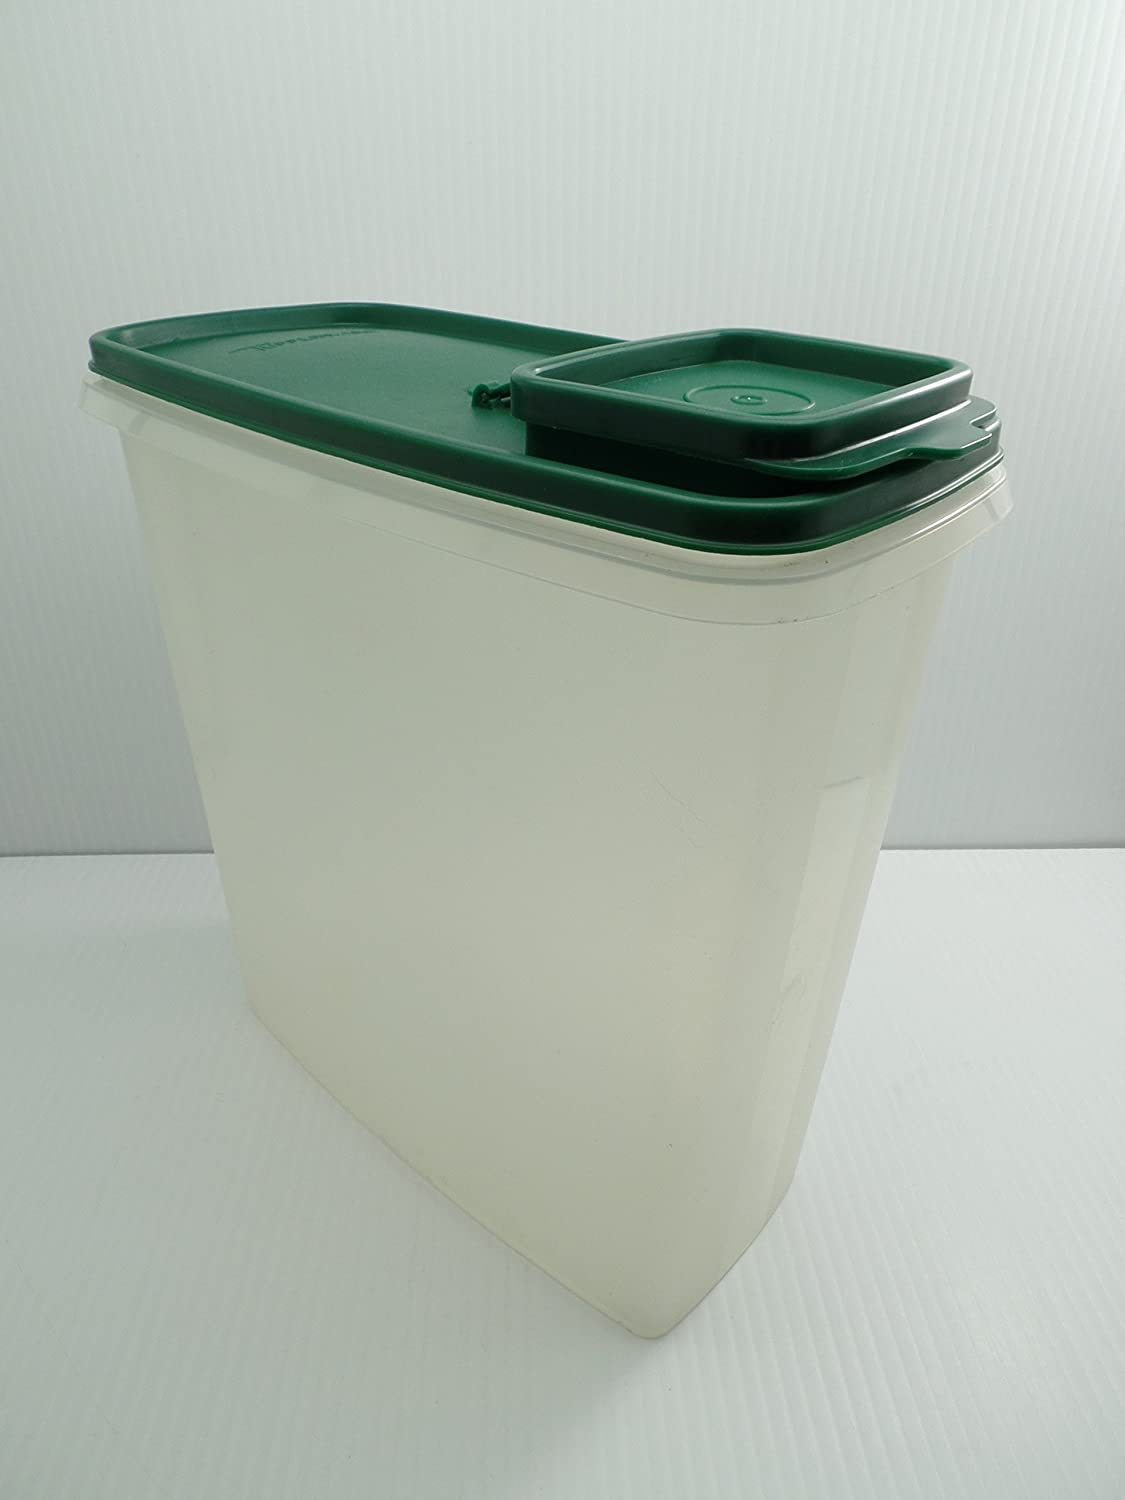 Tupperware Modular Mate 20 Cup Snack Container, Green Lid Frosted 1588-7 Container